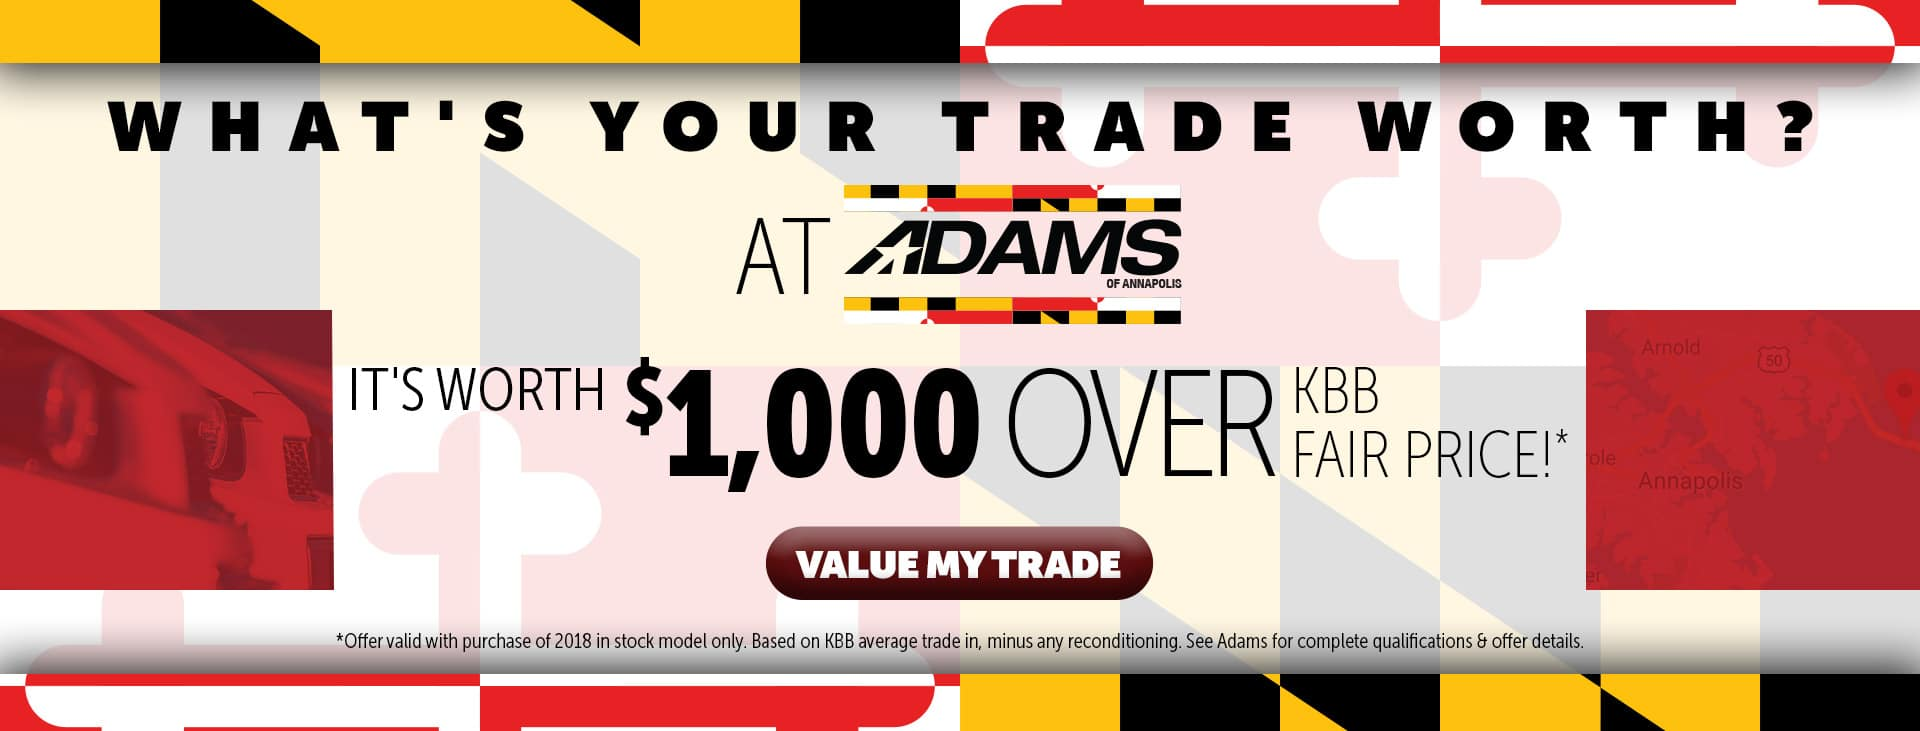 Value Your Trade at Adams in Annapolis